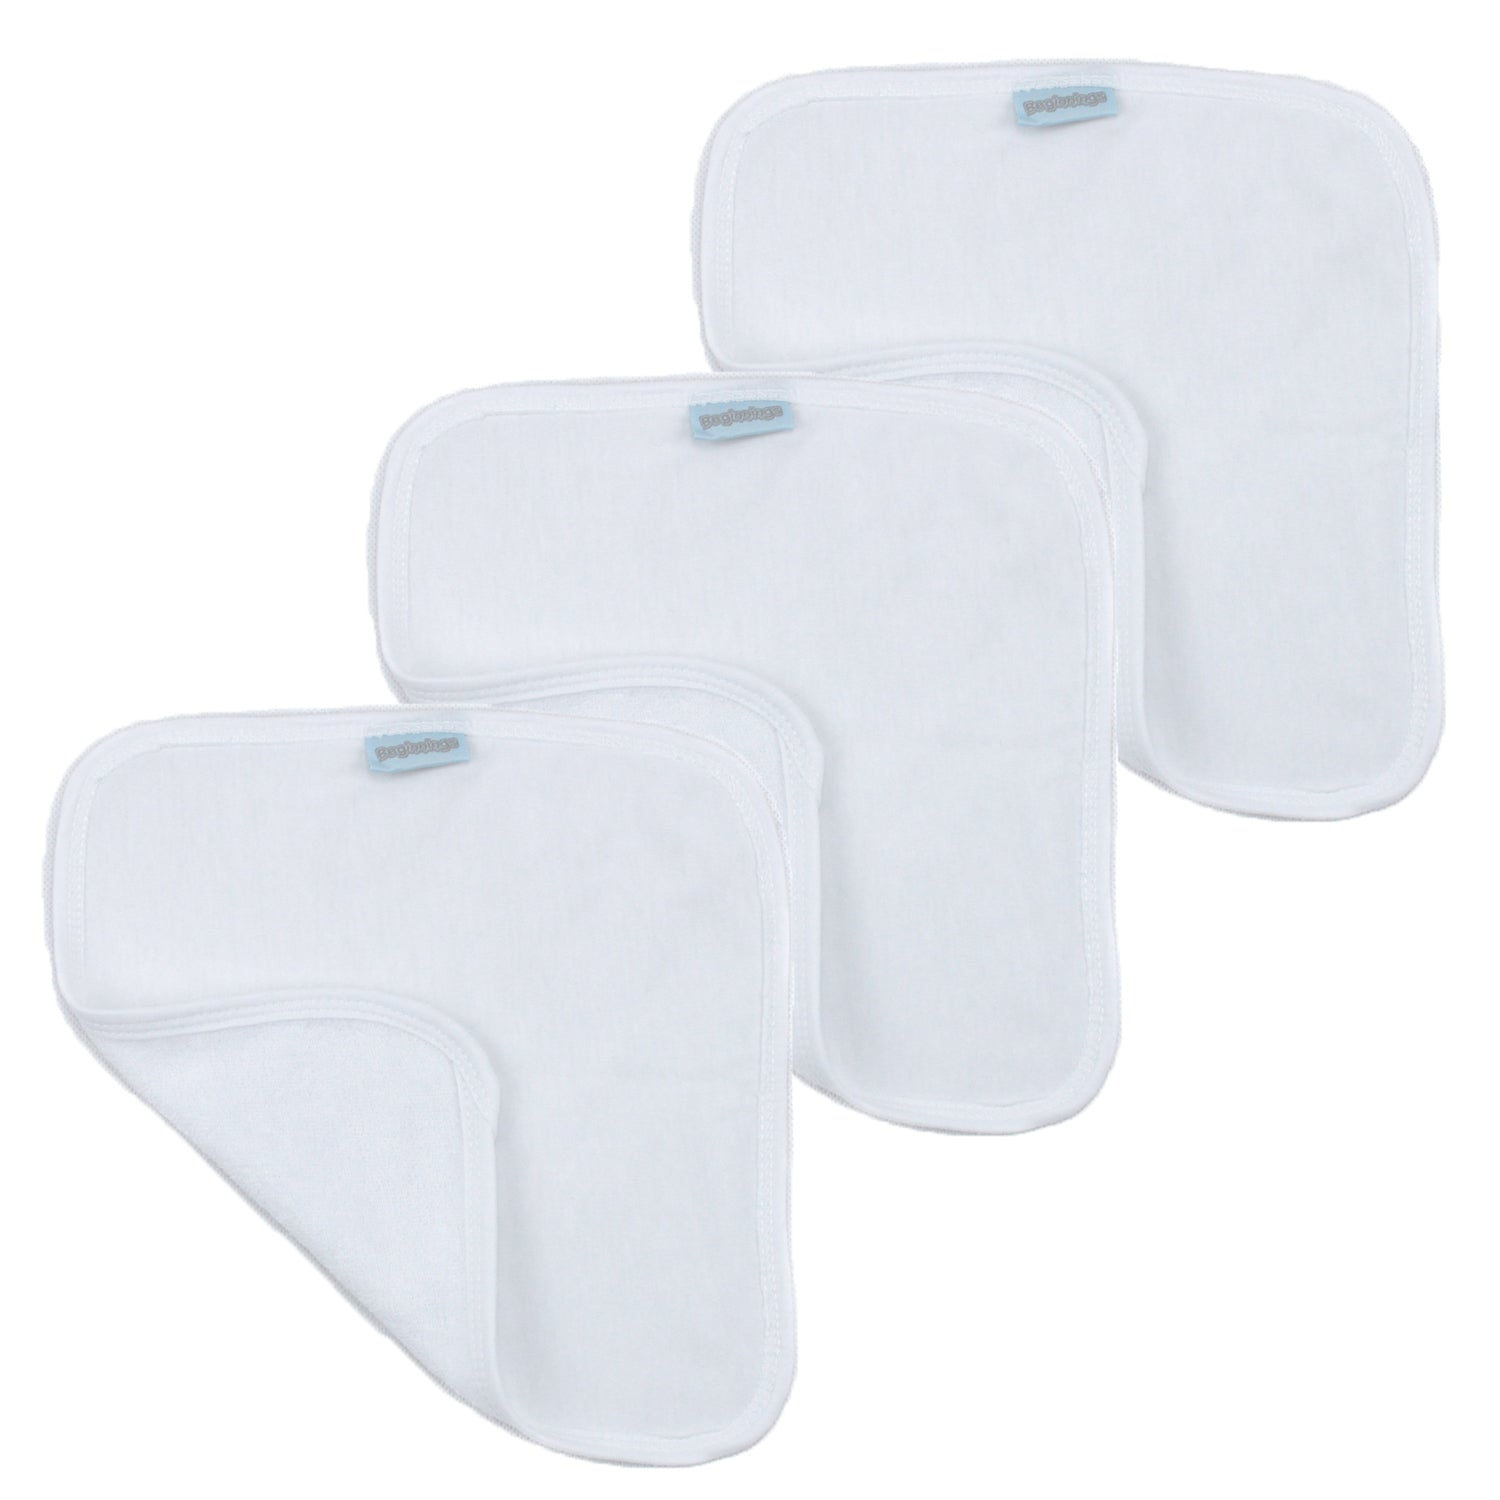 (Unisex) Terry Washcloth Pack (3pcs)